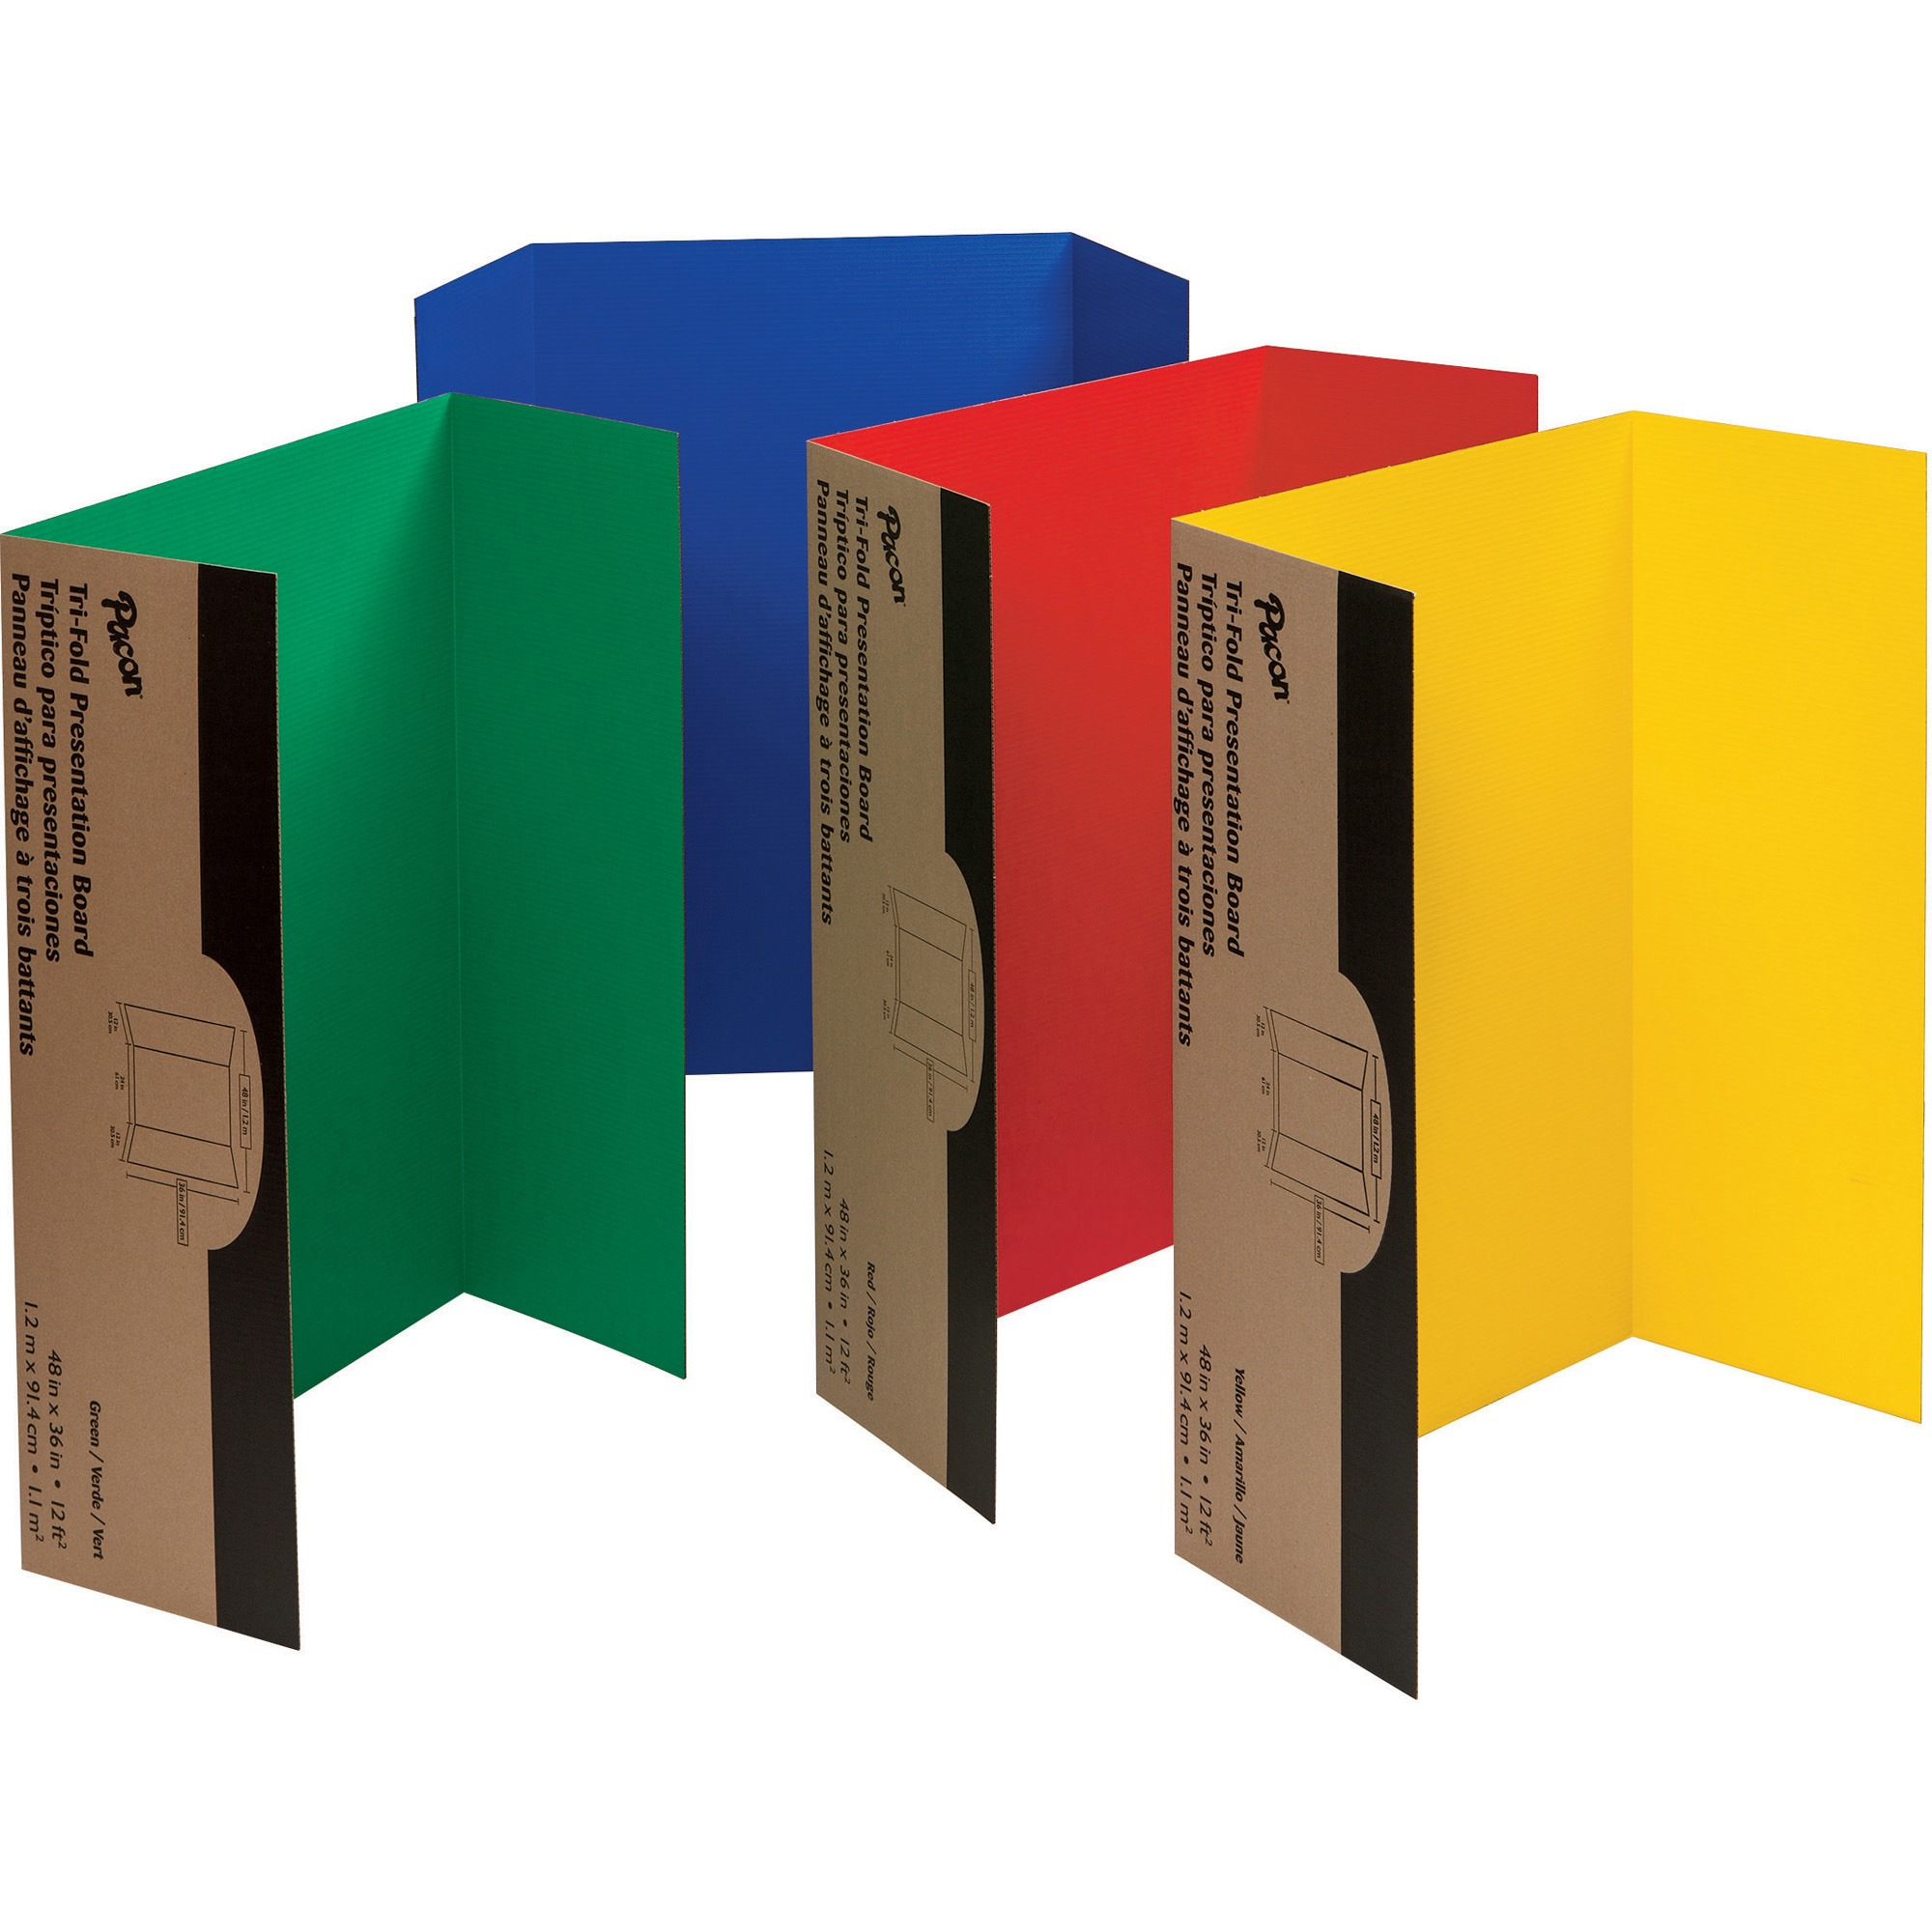 "Pacon Tri-Fold Corrugated Presentation Display Boards, 48"" x 36"", Assorted Colors, 4/Carton"